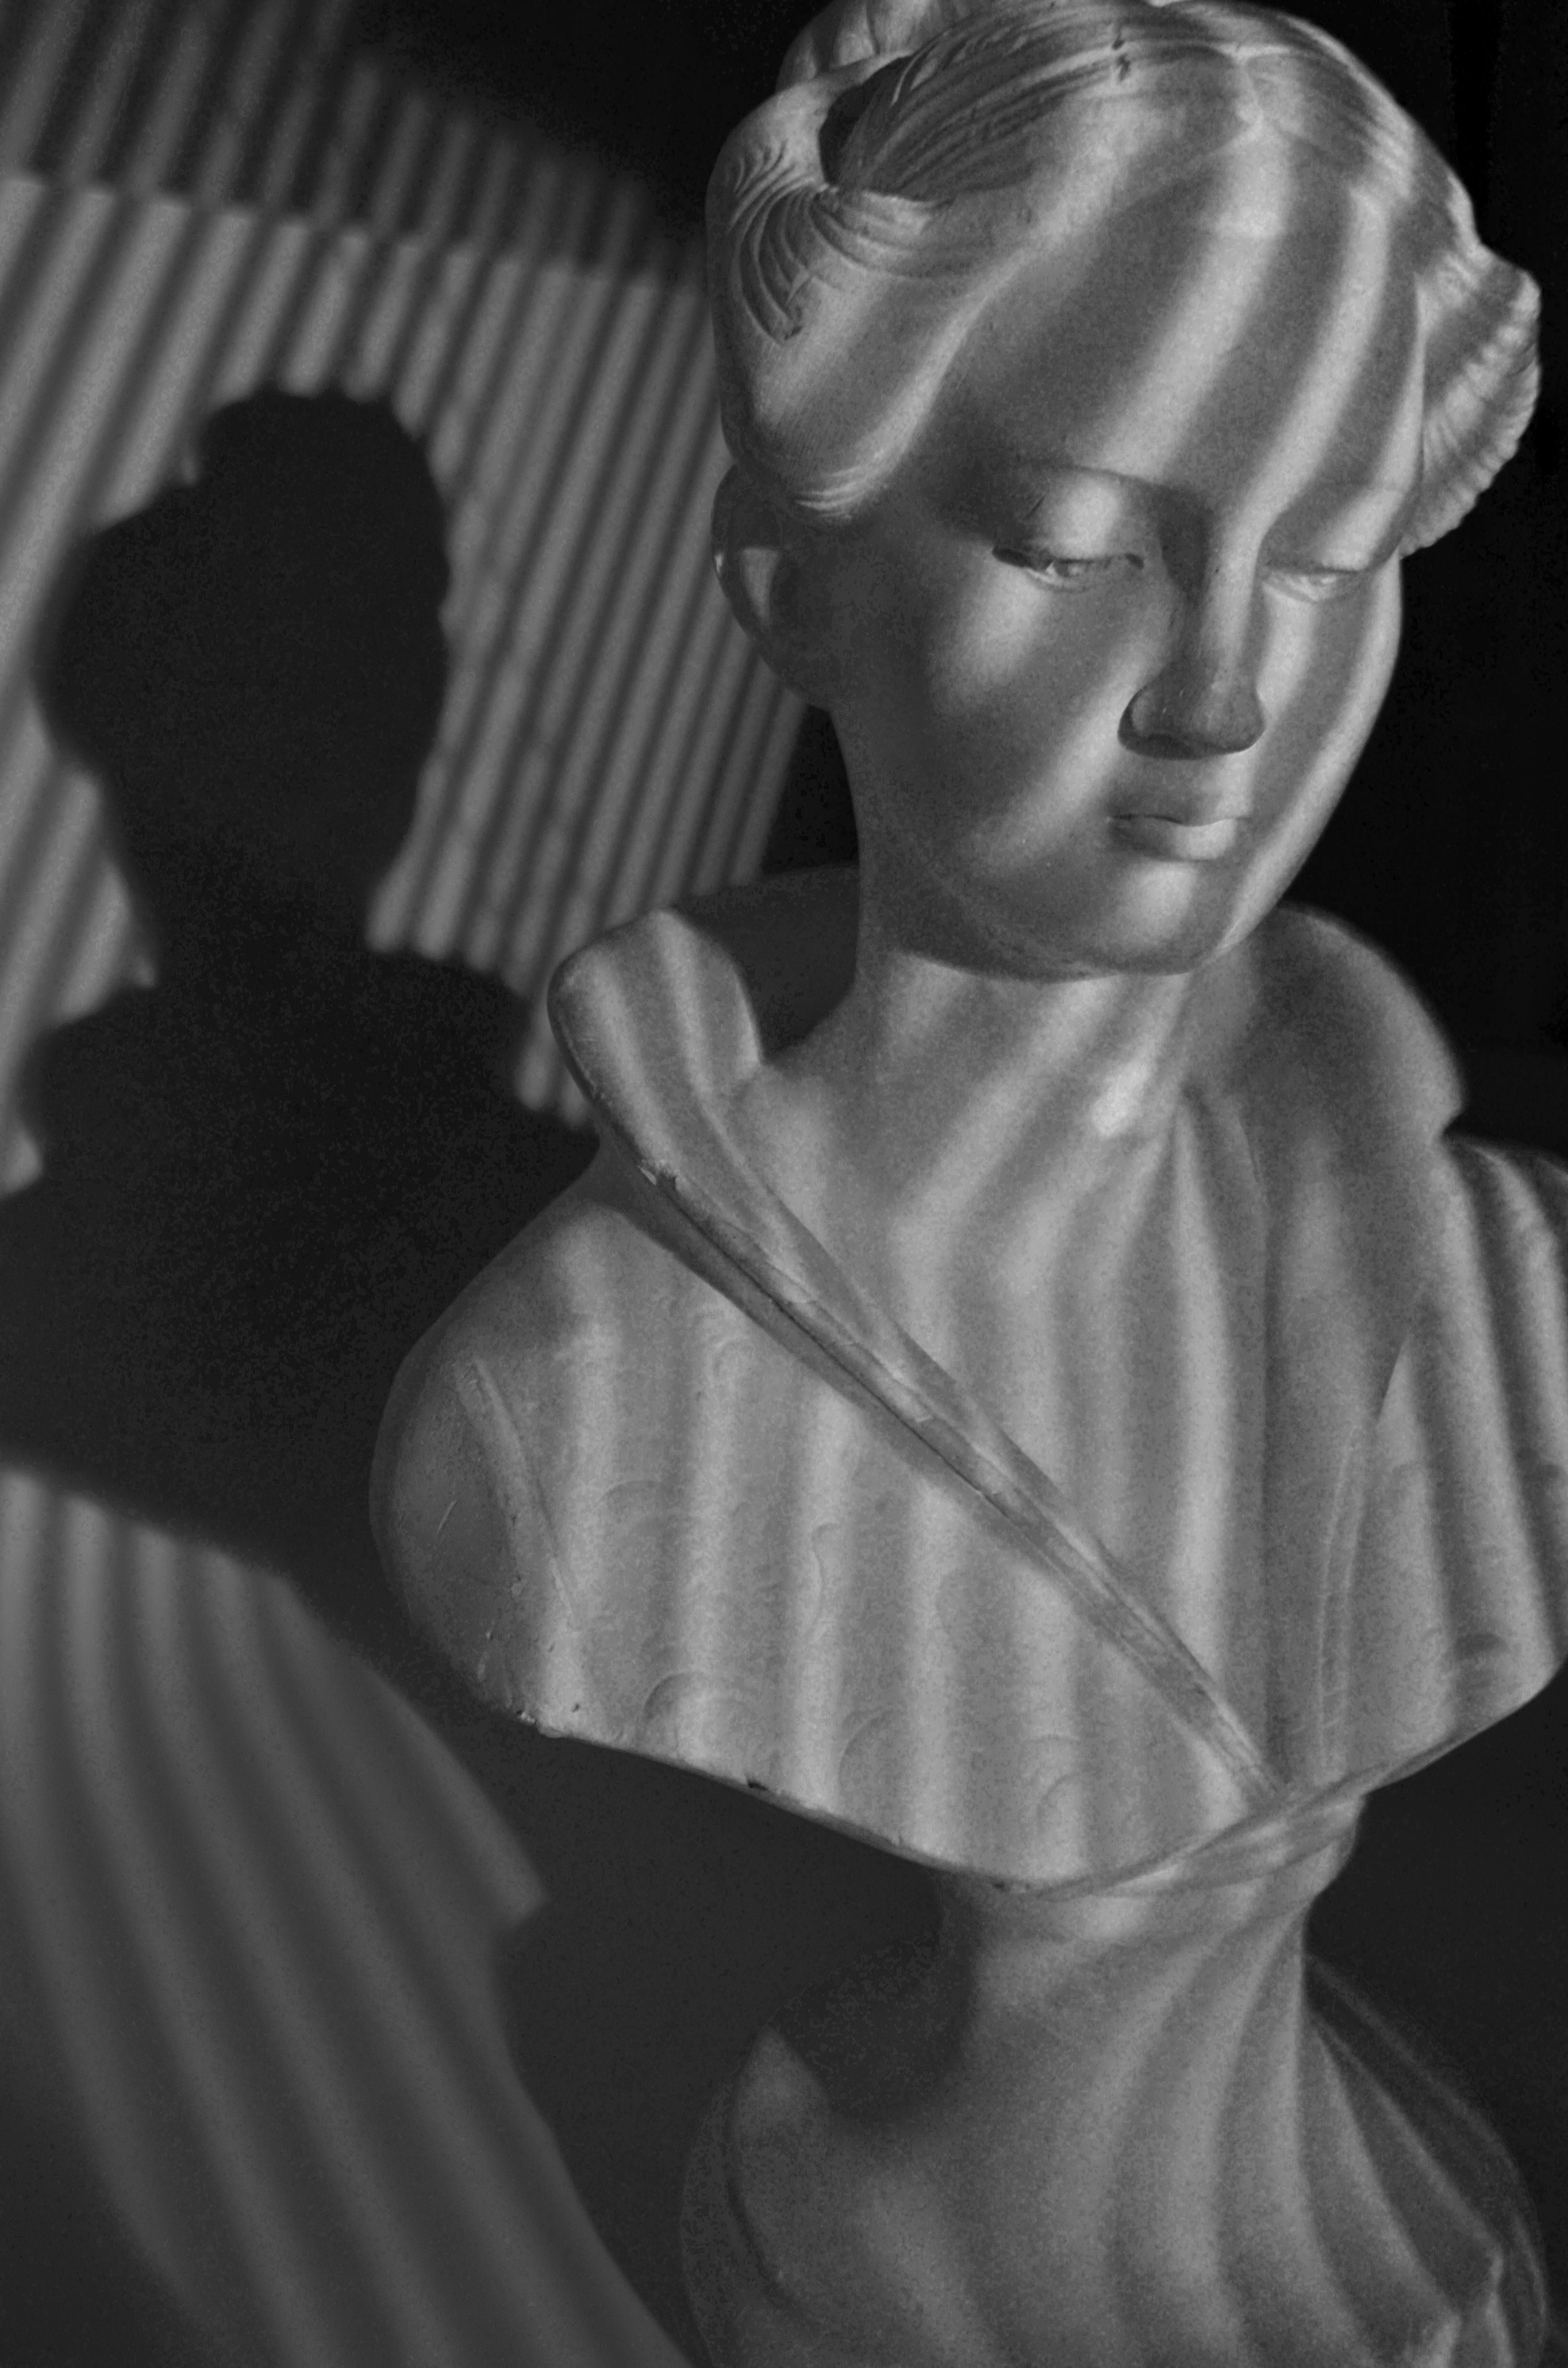 Still life shot of a statue that demonstrates excellent shadow lighting with the use of curves in background and statue itself.